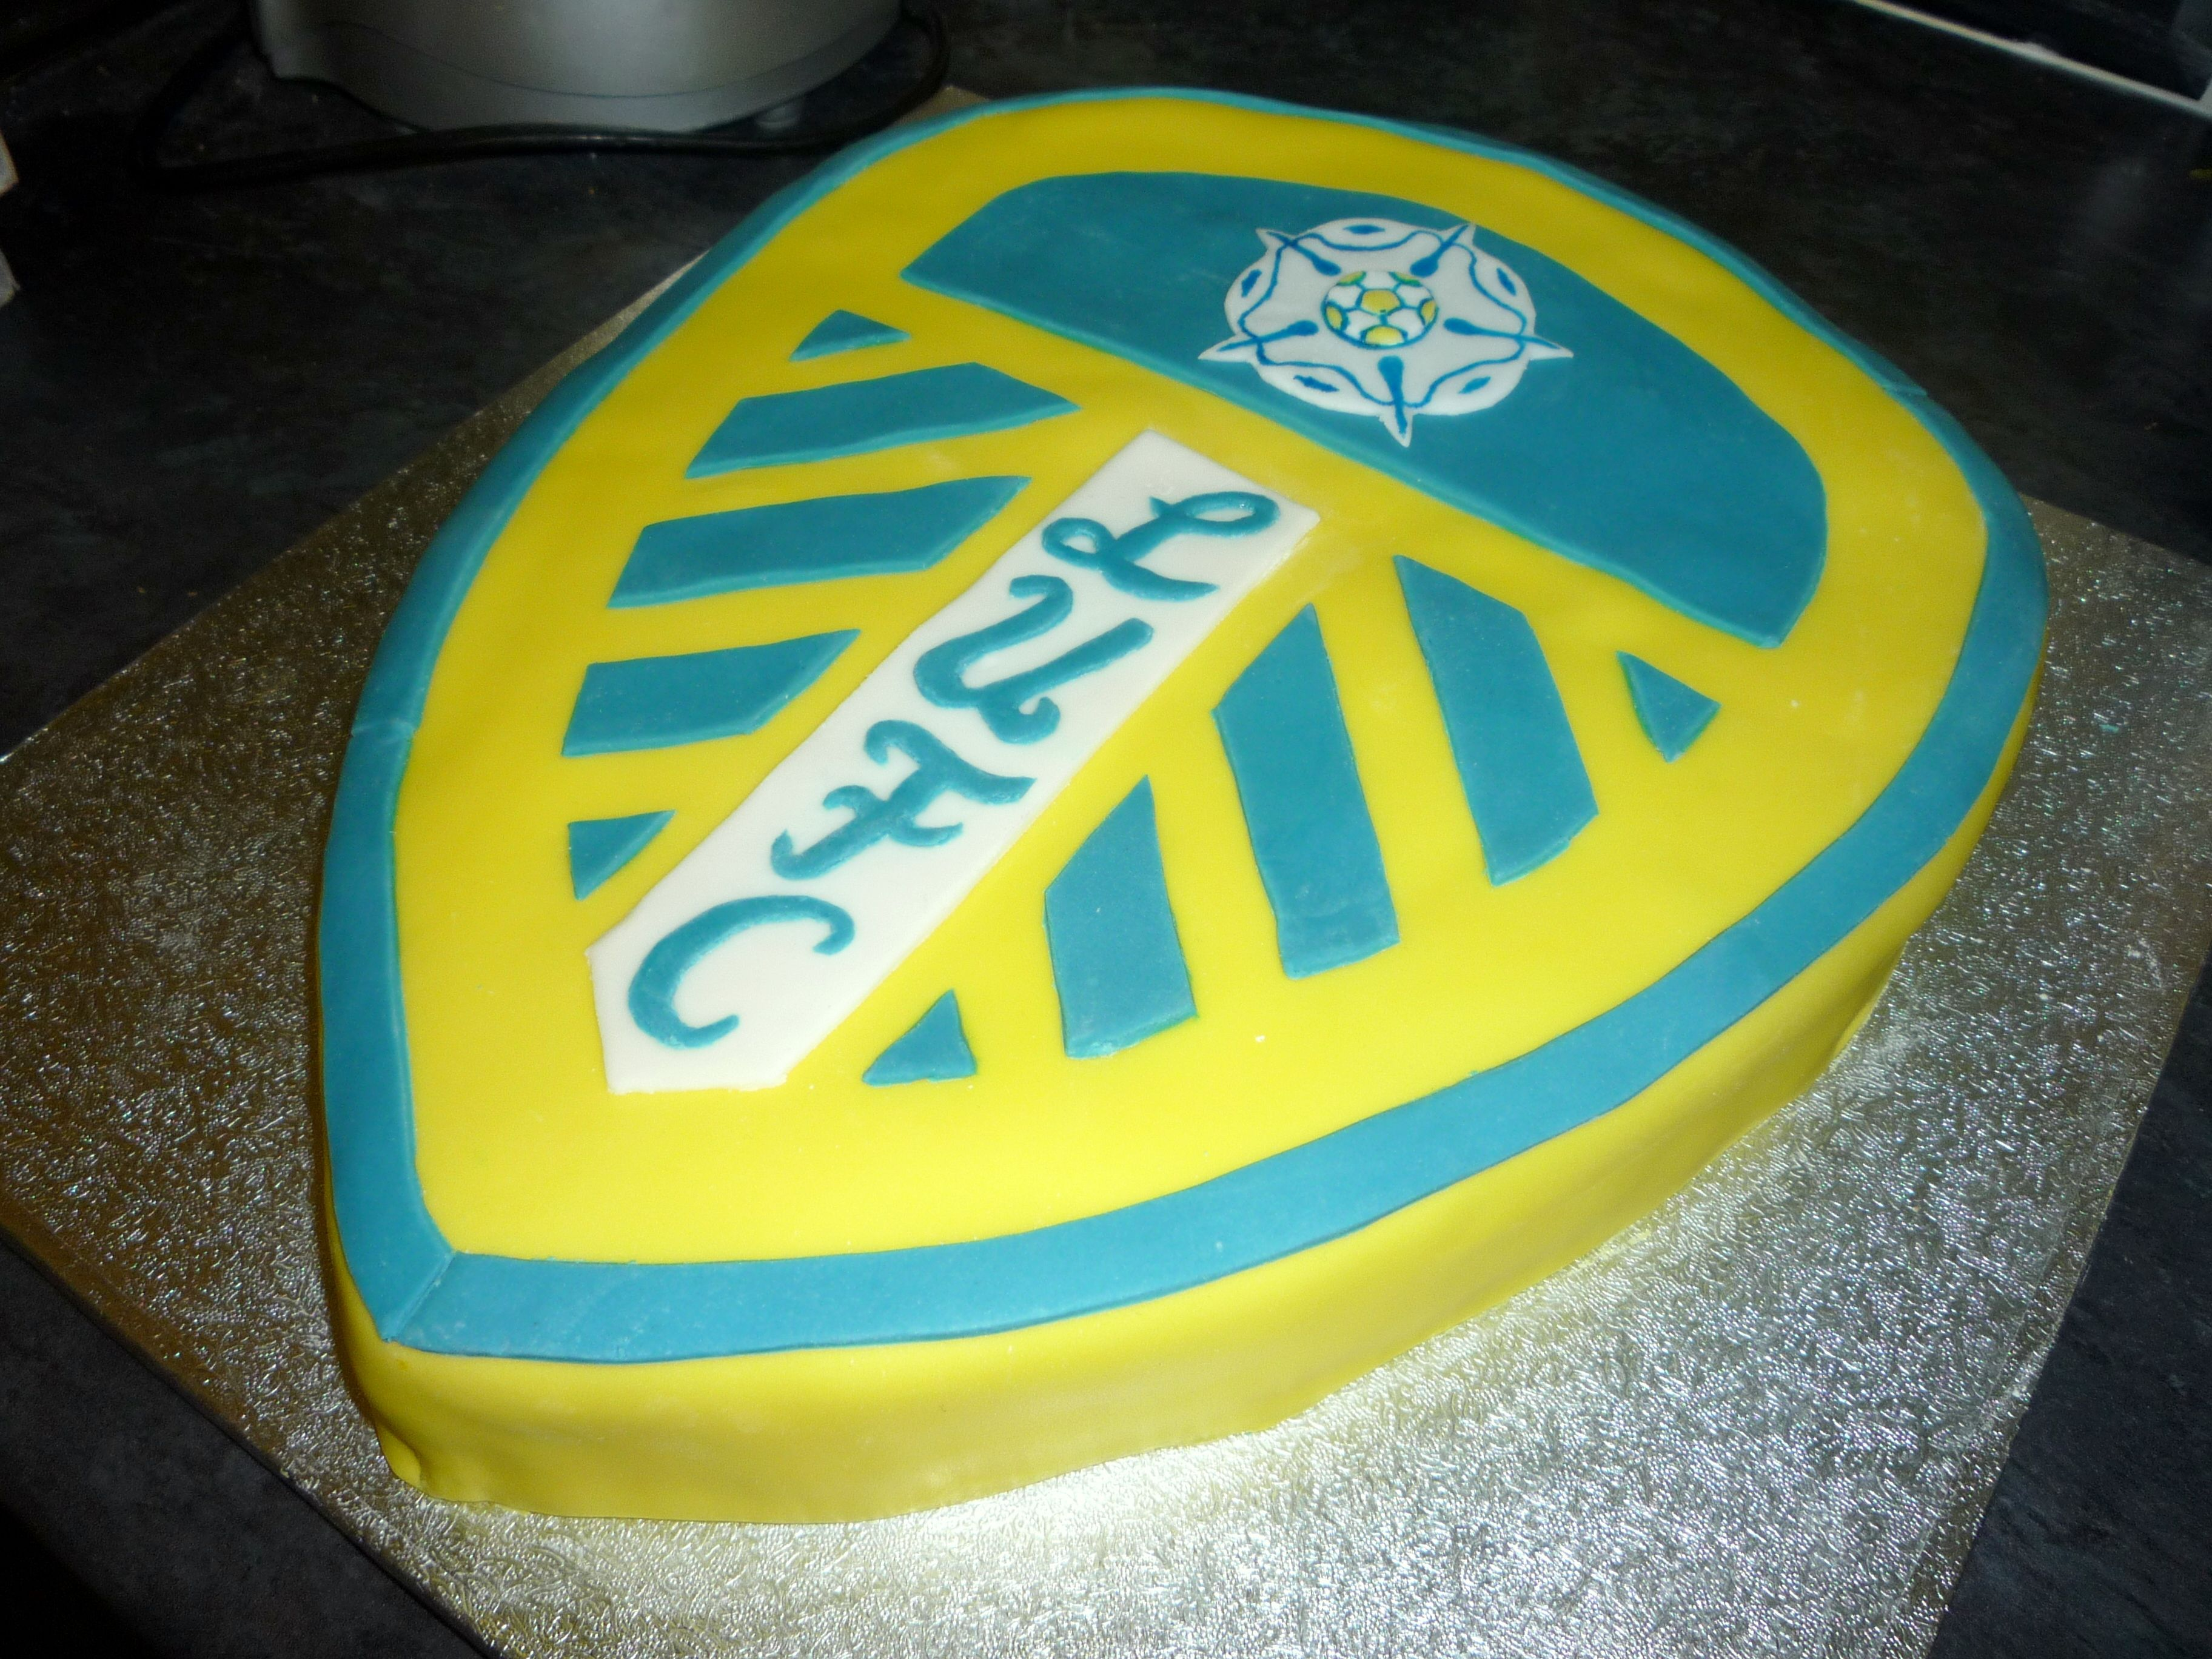 Leeds United Football Cake Copied best I could from the LUFC logo